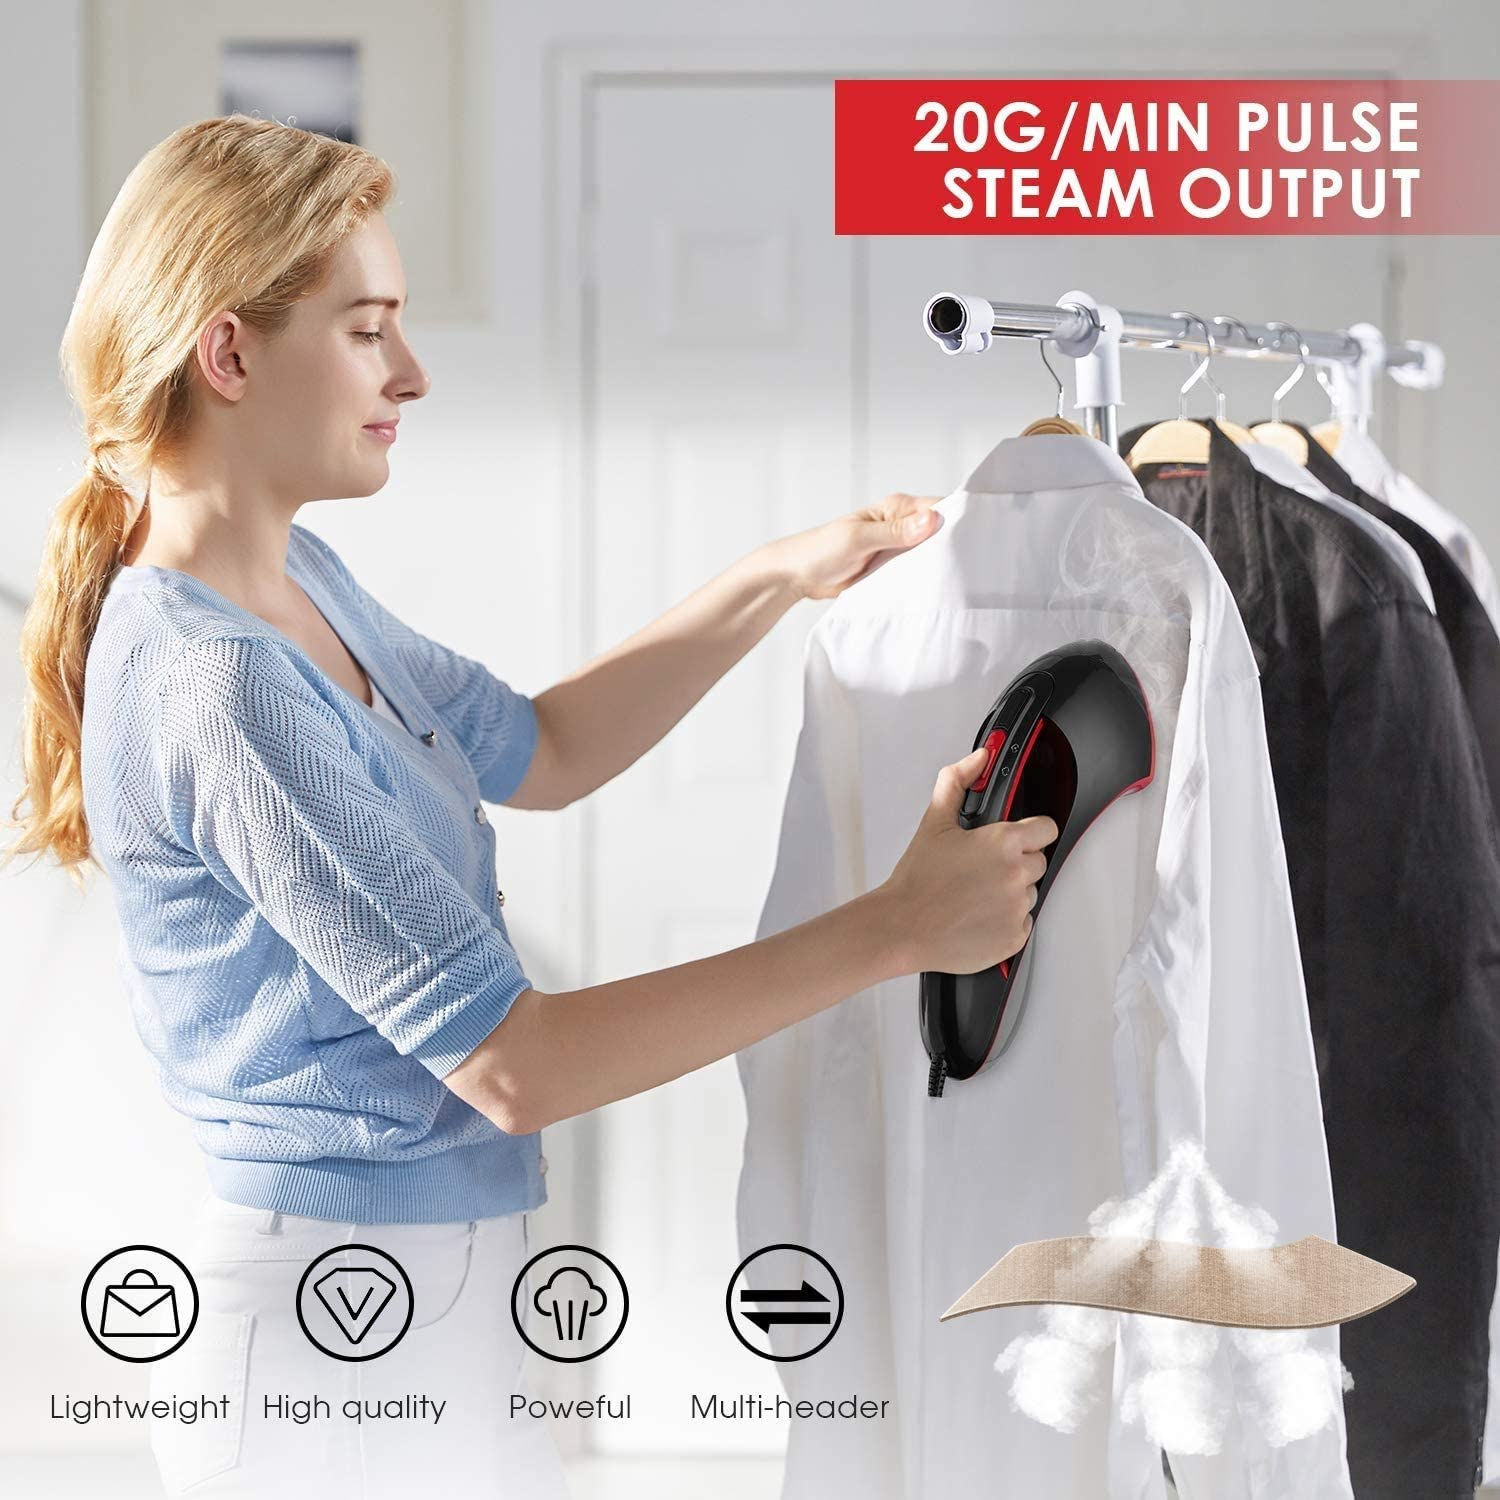 Free Amazon Promo Code 2020 for Steam Iron for Clothes